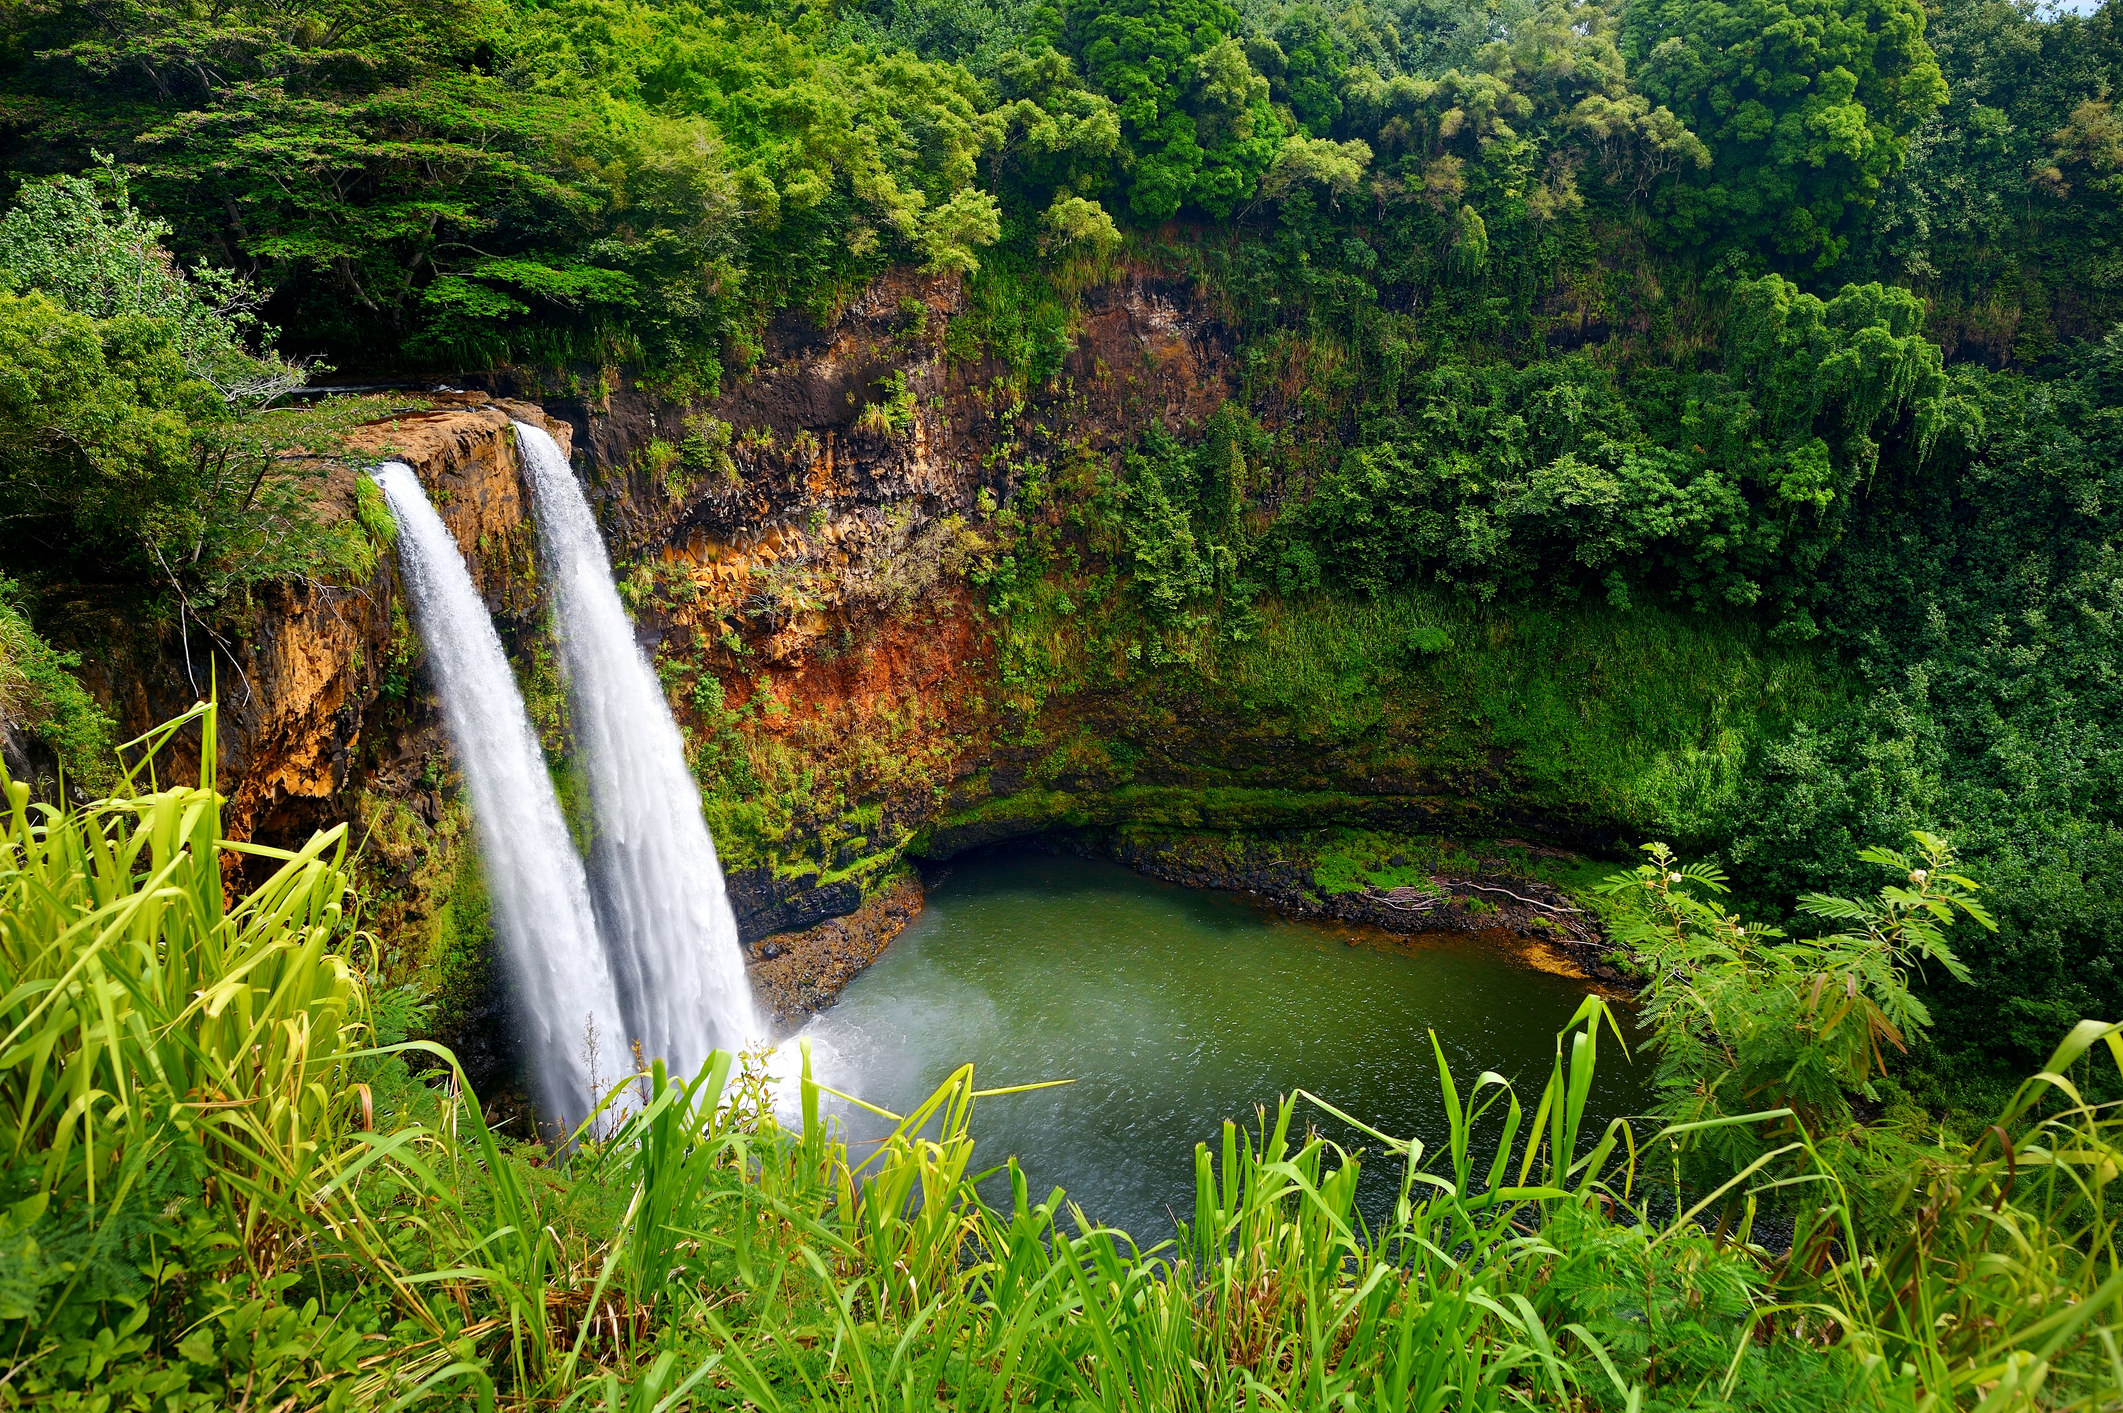 Two waterfalls dropping off a cliff to a pool below